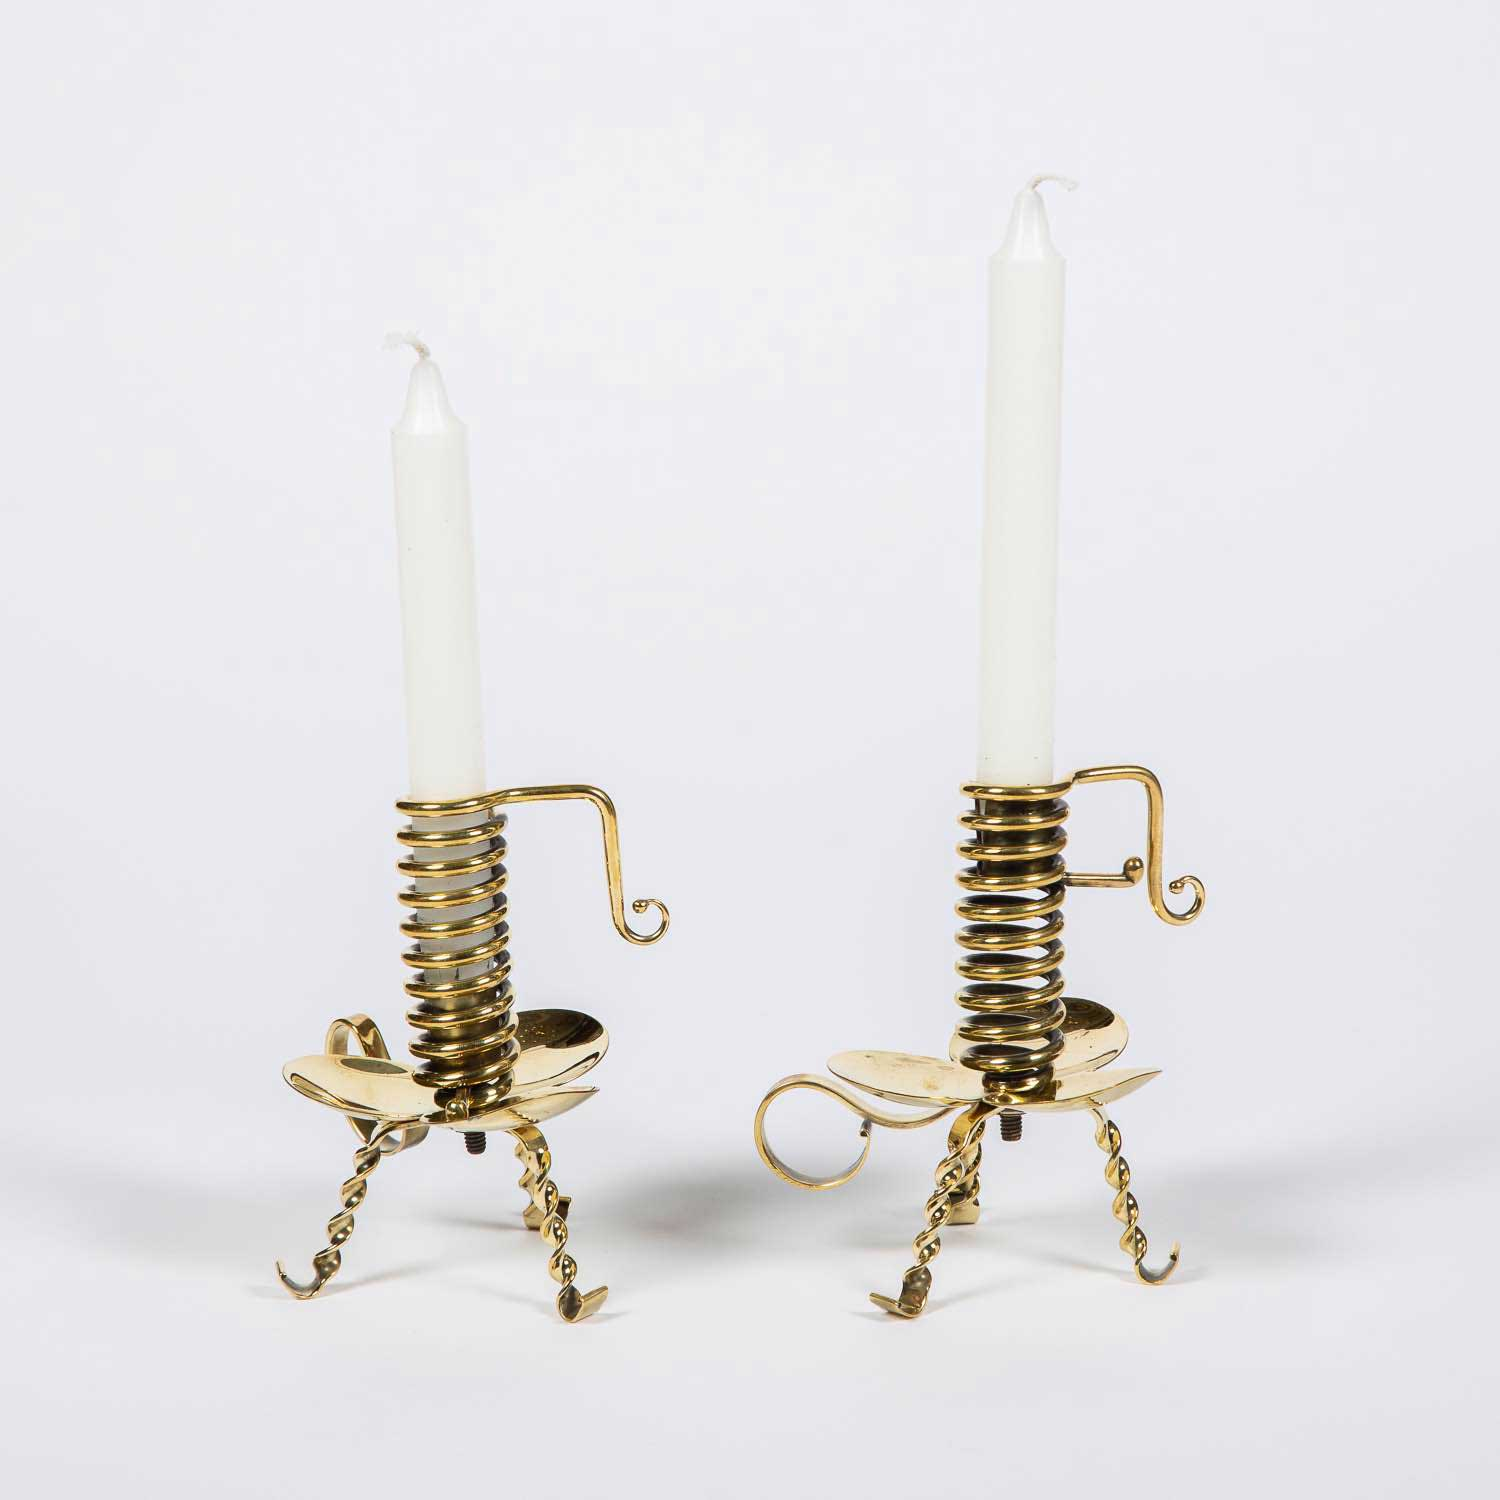 Courting Candlesticks